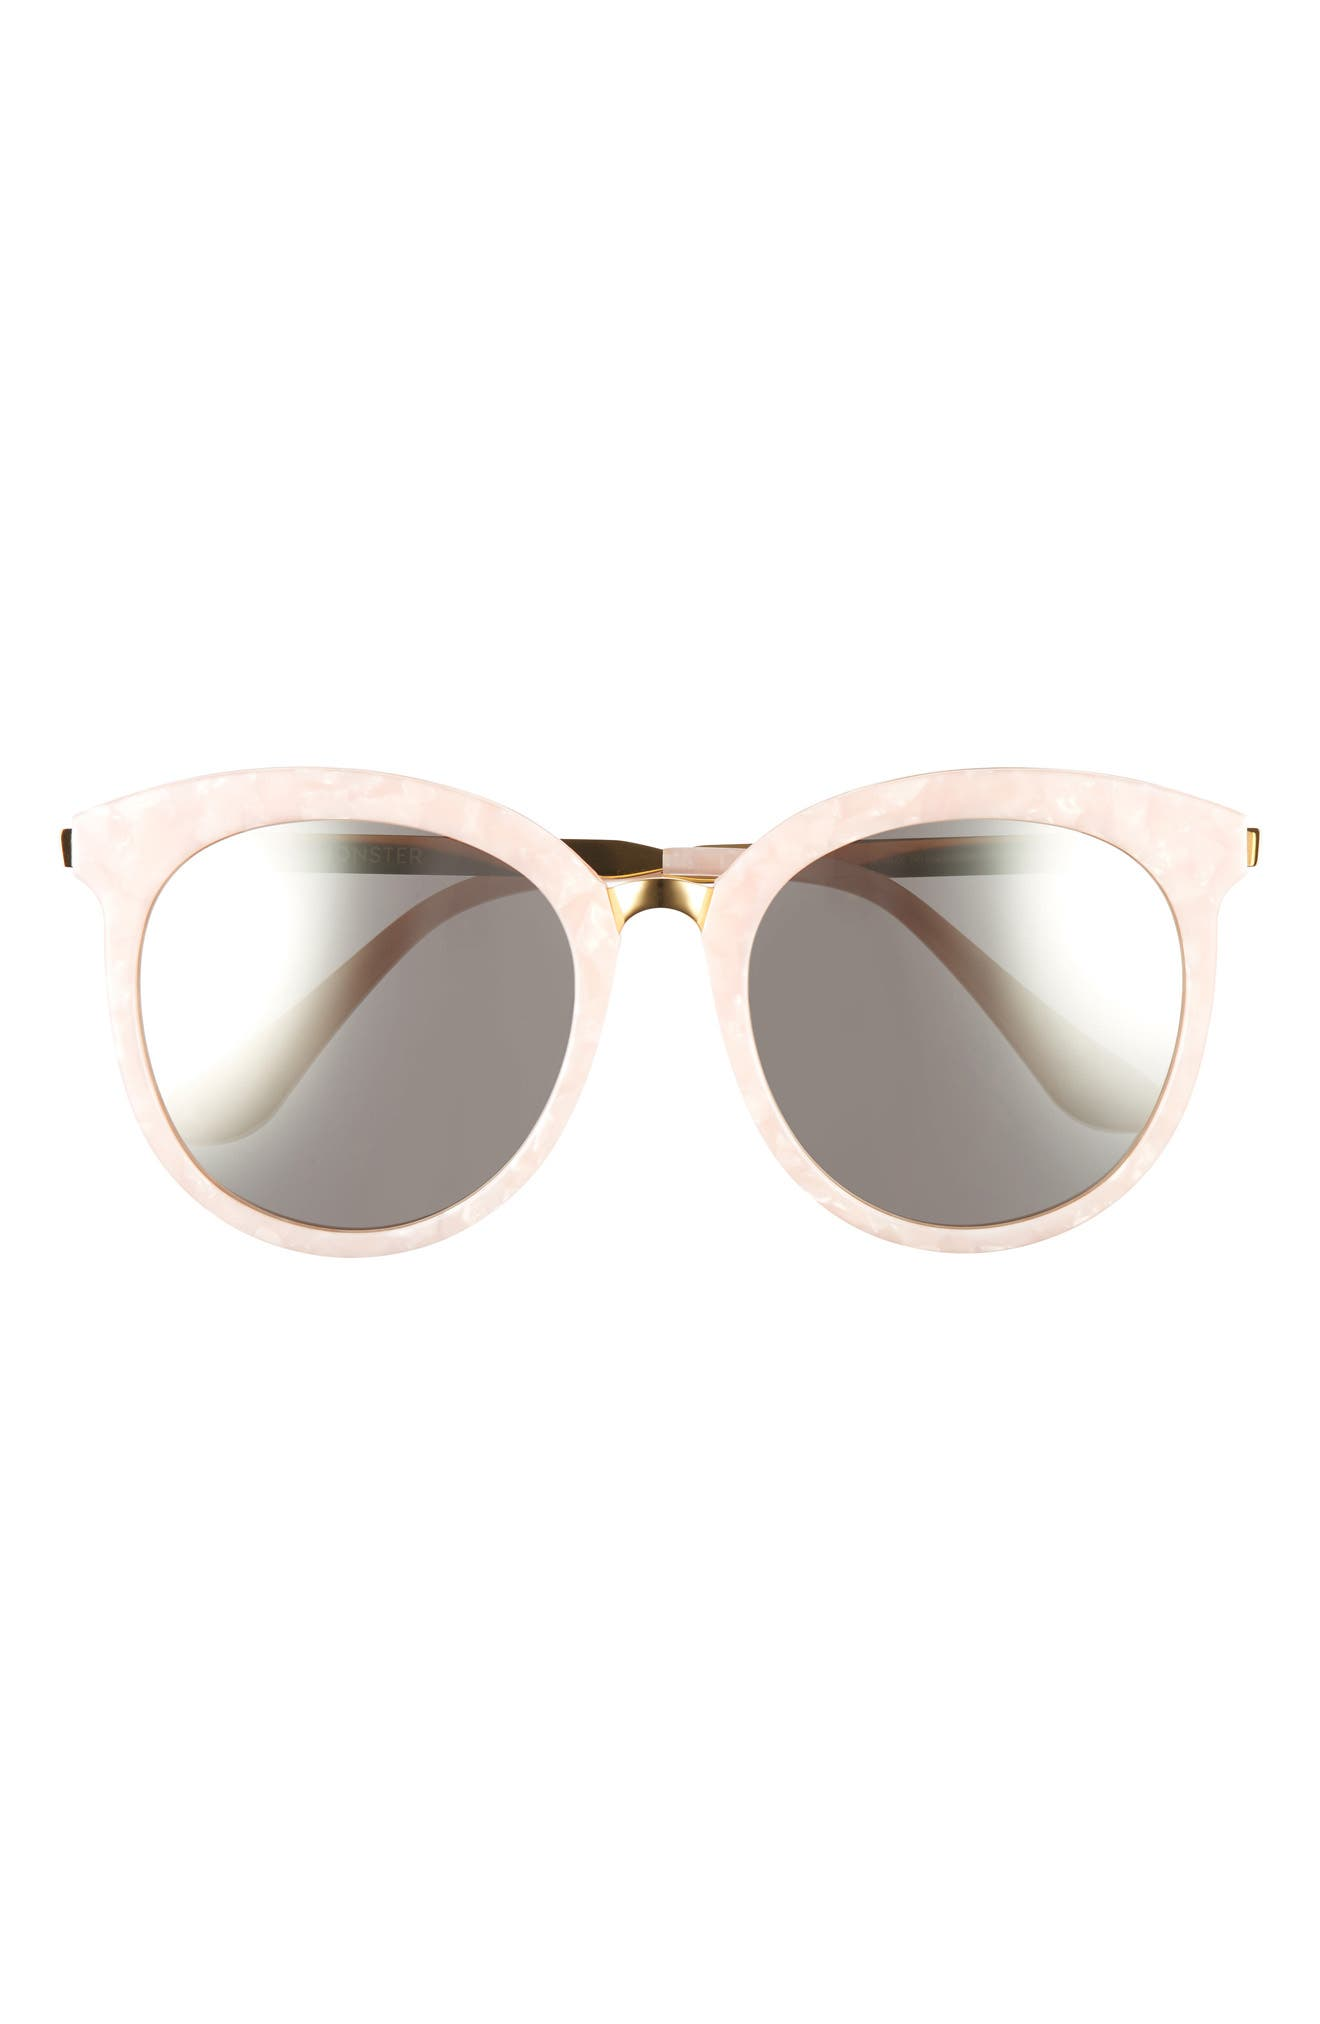 Lovesome 56mm Cat Eye Sunglasses,                             Main thumbnail 1, color,                             Light Pink/Gold